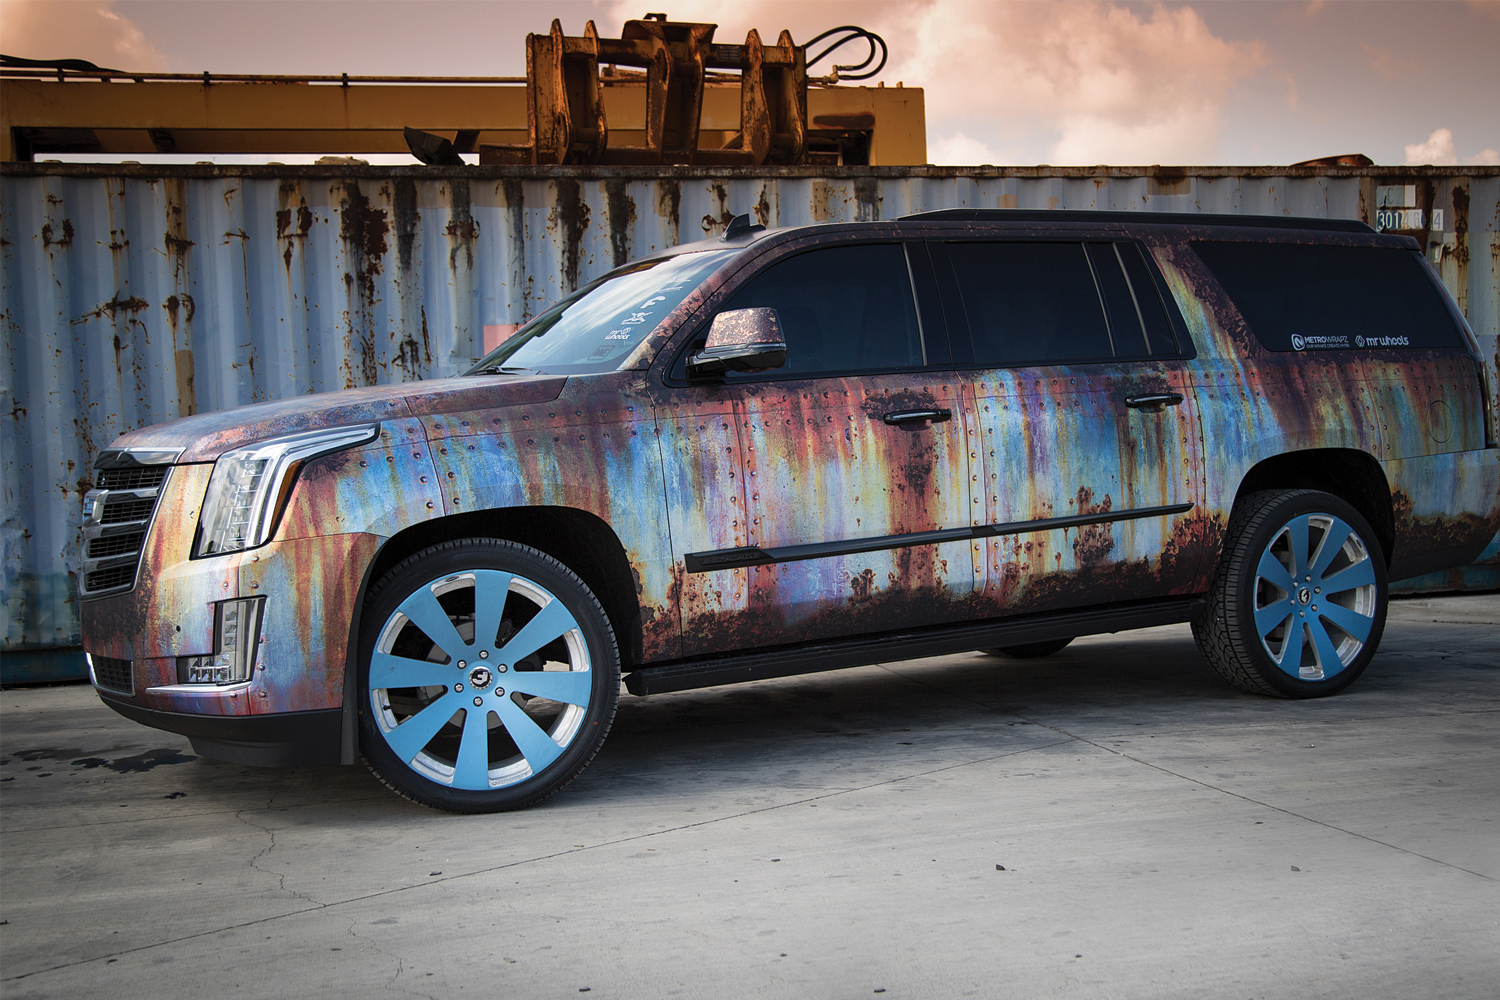 metrowrapz_product_gallery_rust_escalade_one.jpg